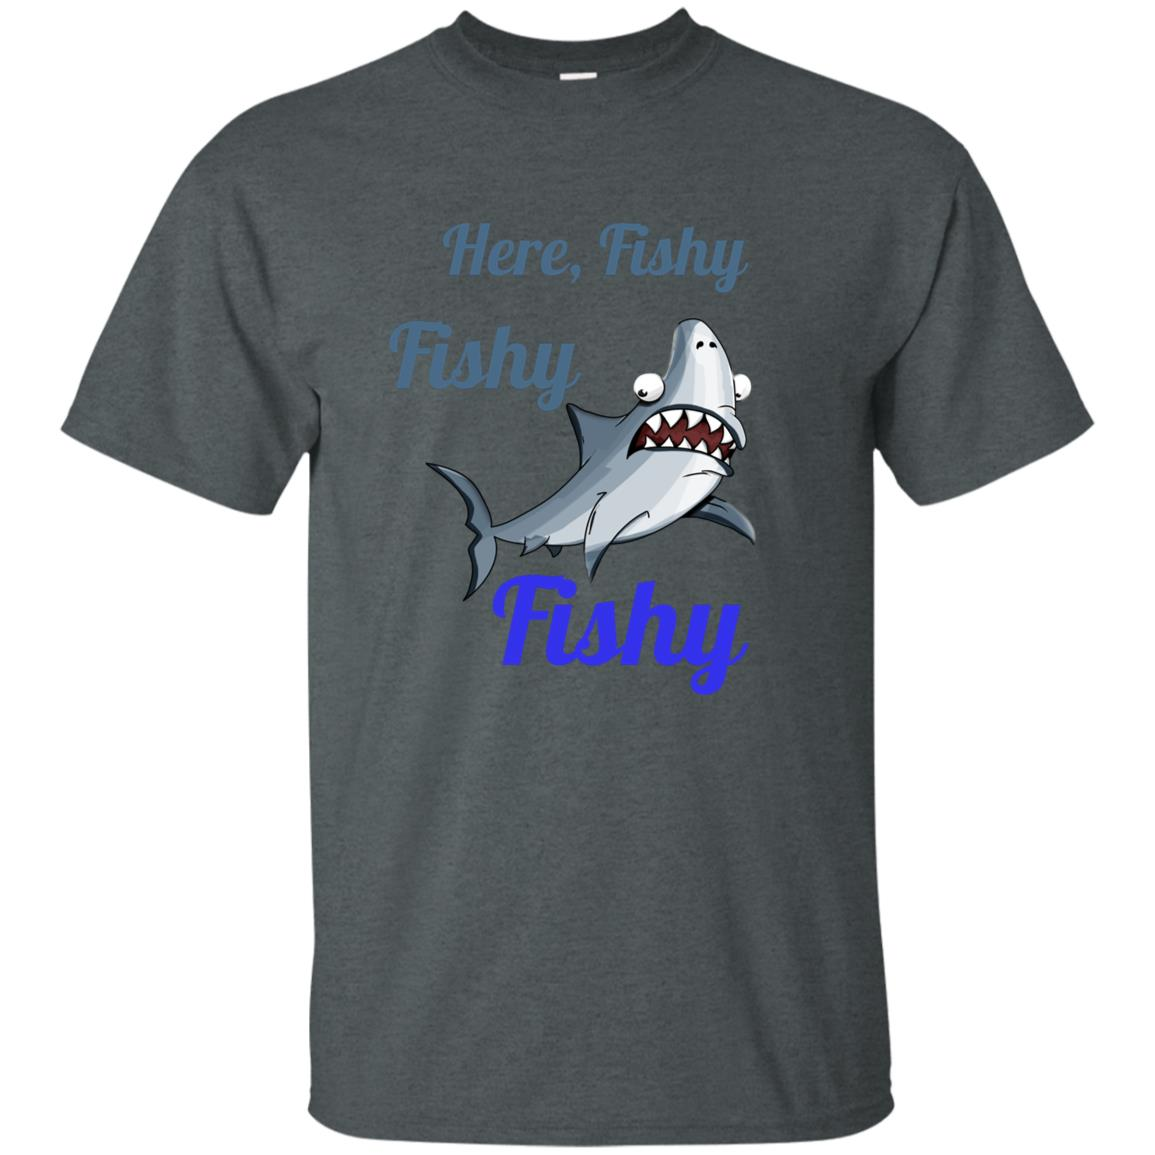 Fishing, funny and cute Unisex Short Sleeve